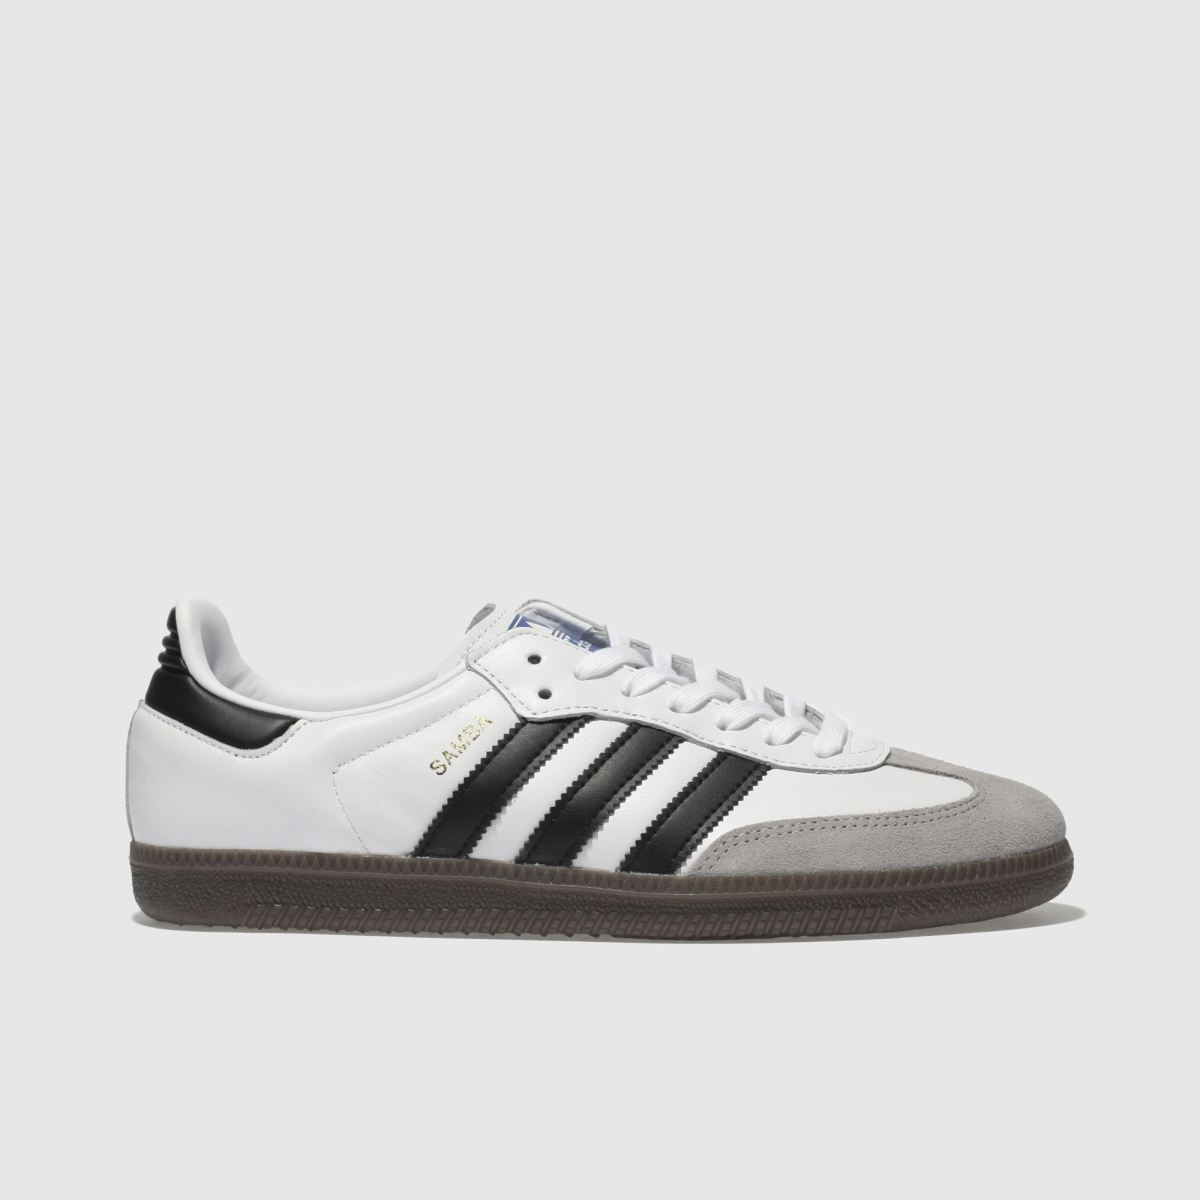 Adidas White & Black Samba Og Trainers